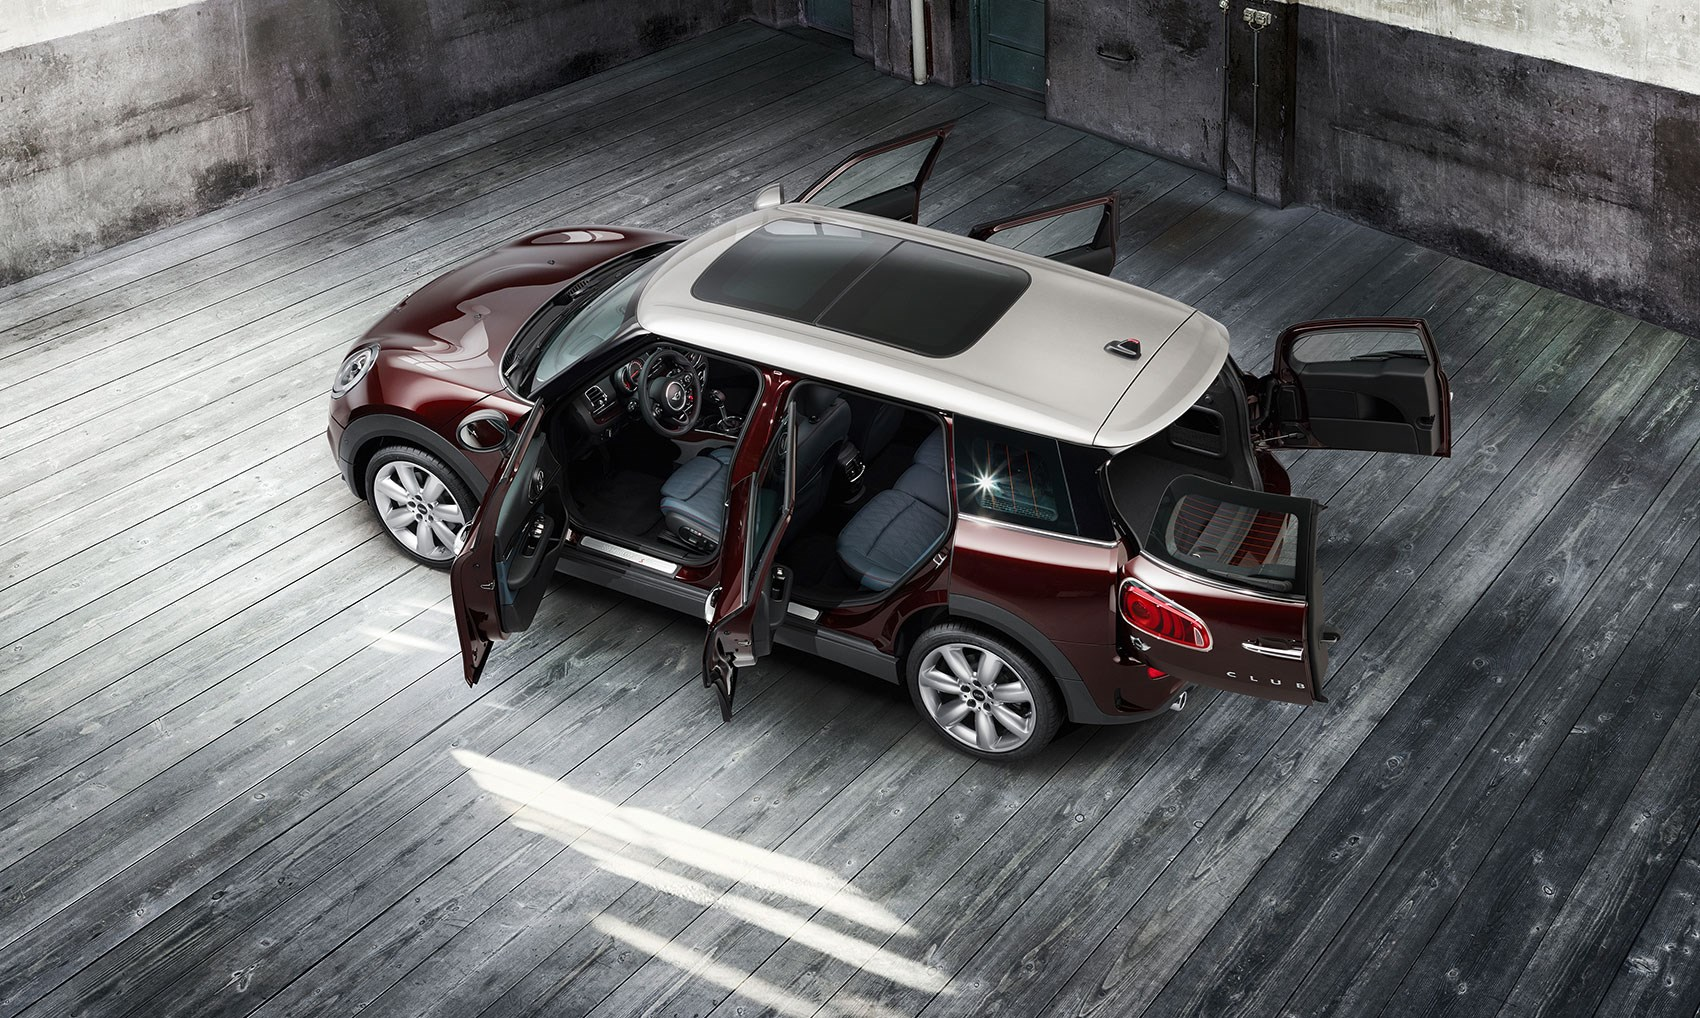 Mini Clubman 2015 Biggest Mini Yet Keeps Barn Doors Adds Side